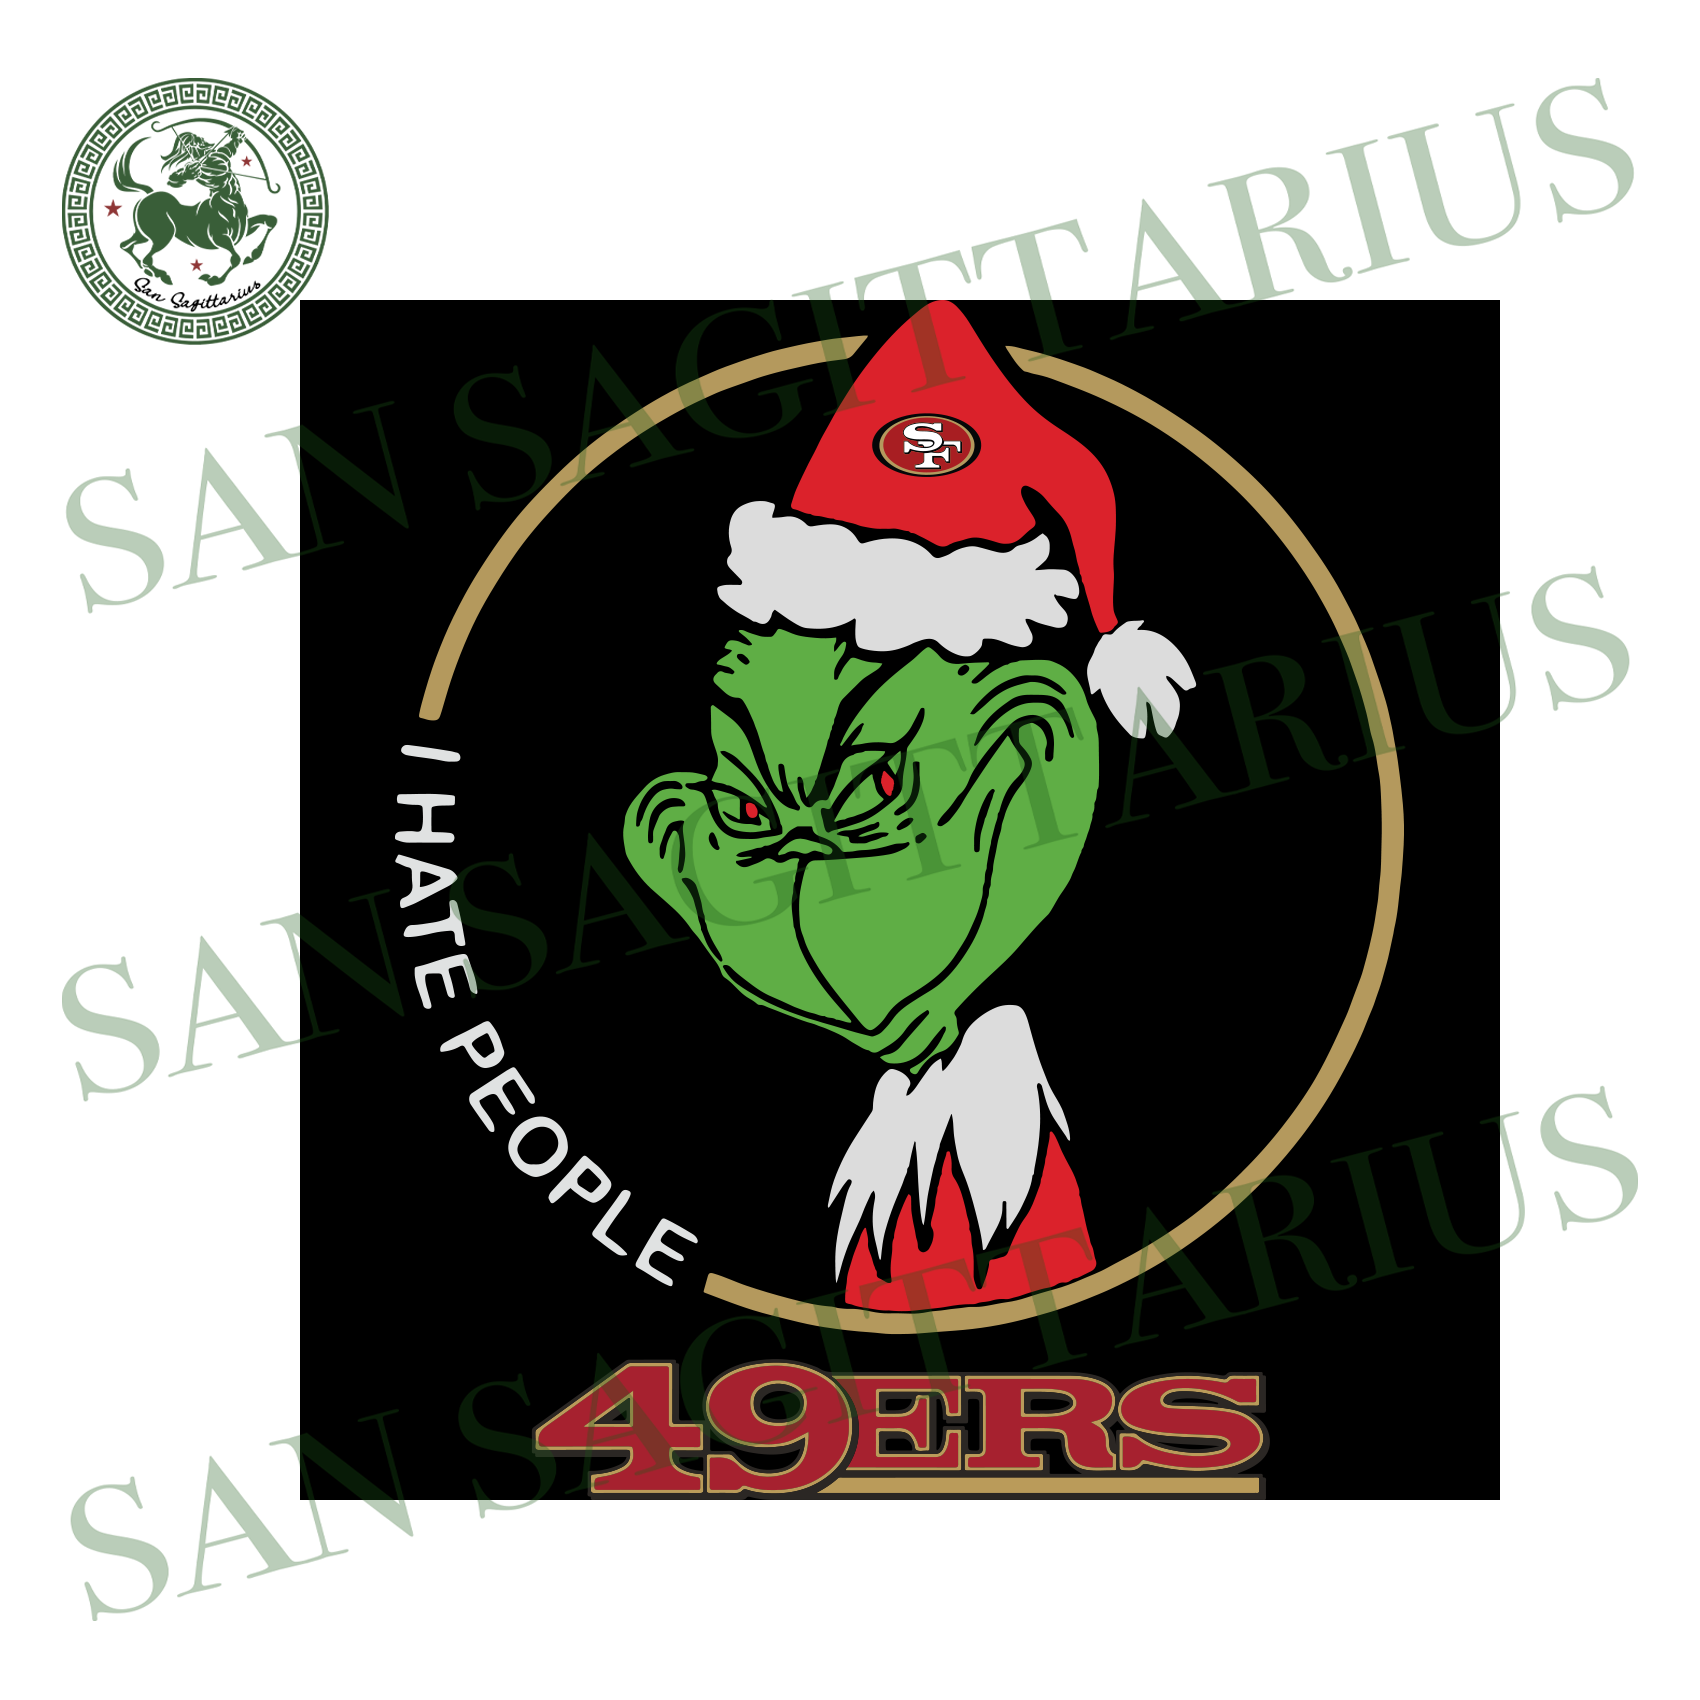 San Francisco 49ers Logo With Grinch, Sport Svg, NFL Football Svg, NFL Svg, NFL Sport, San Francisco 49ers Svg, San Francisco 49ers, San Francisco 49ers NFL Lover, SF 49ers Svg, Football Svg